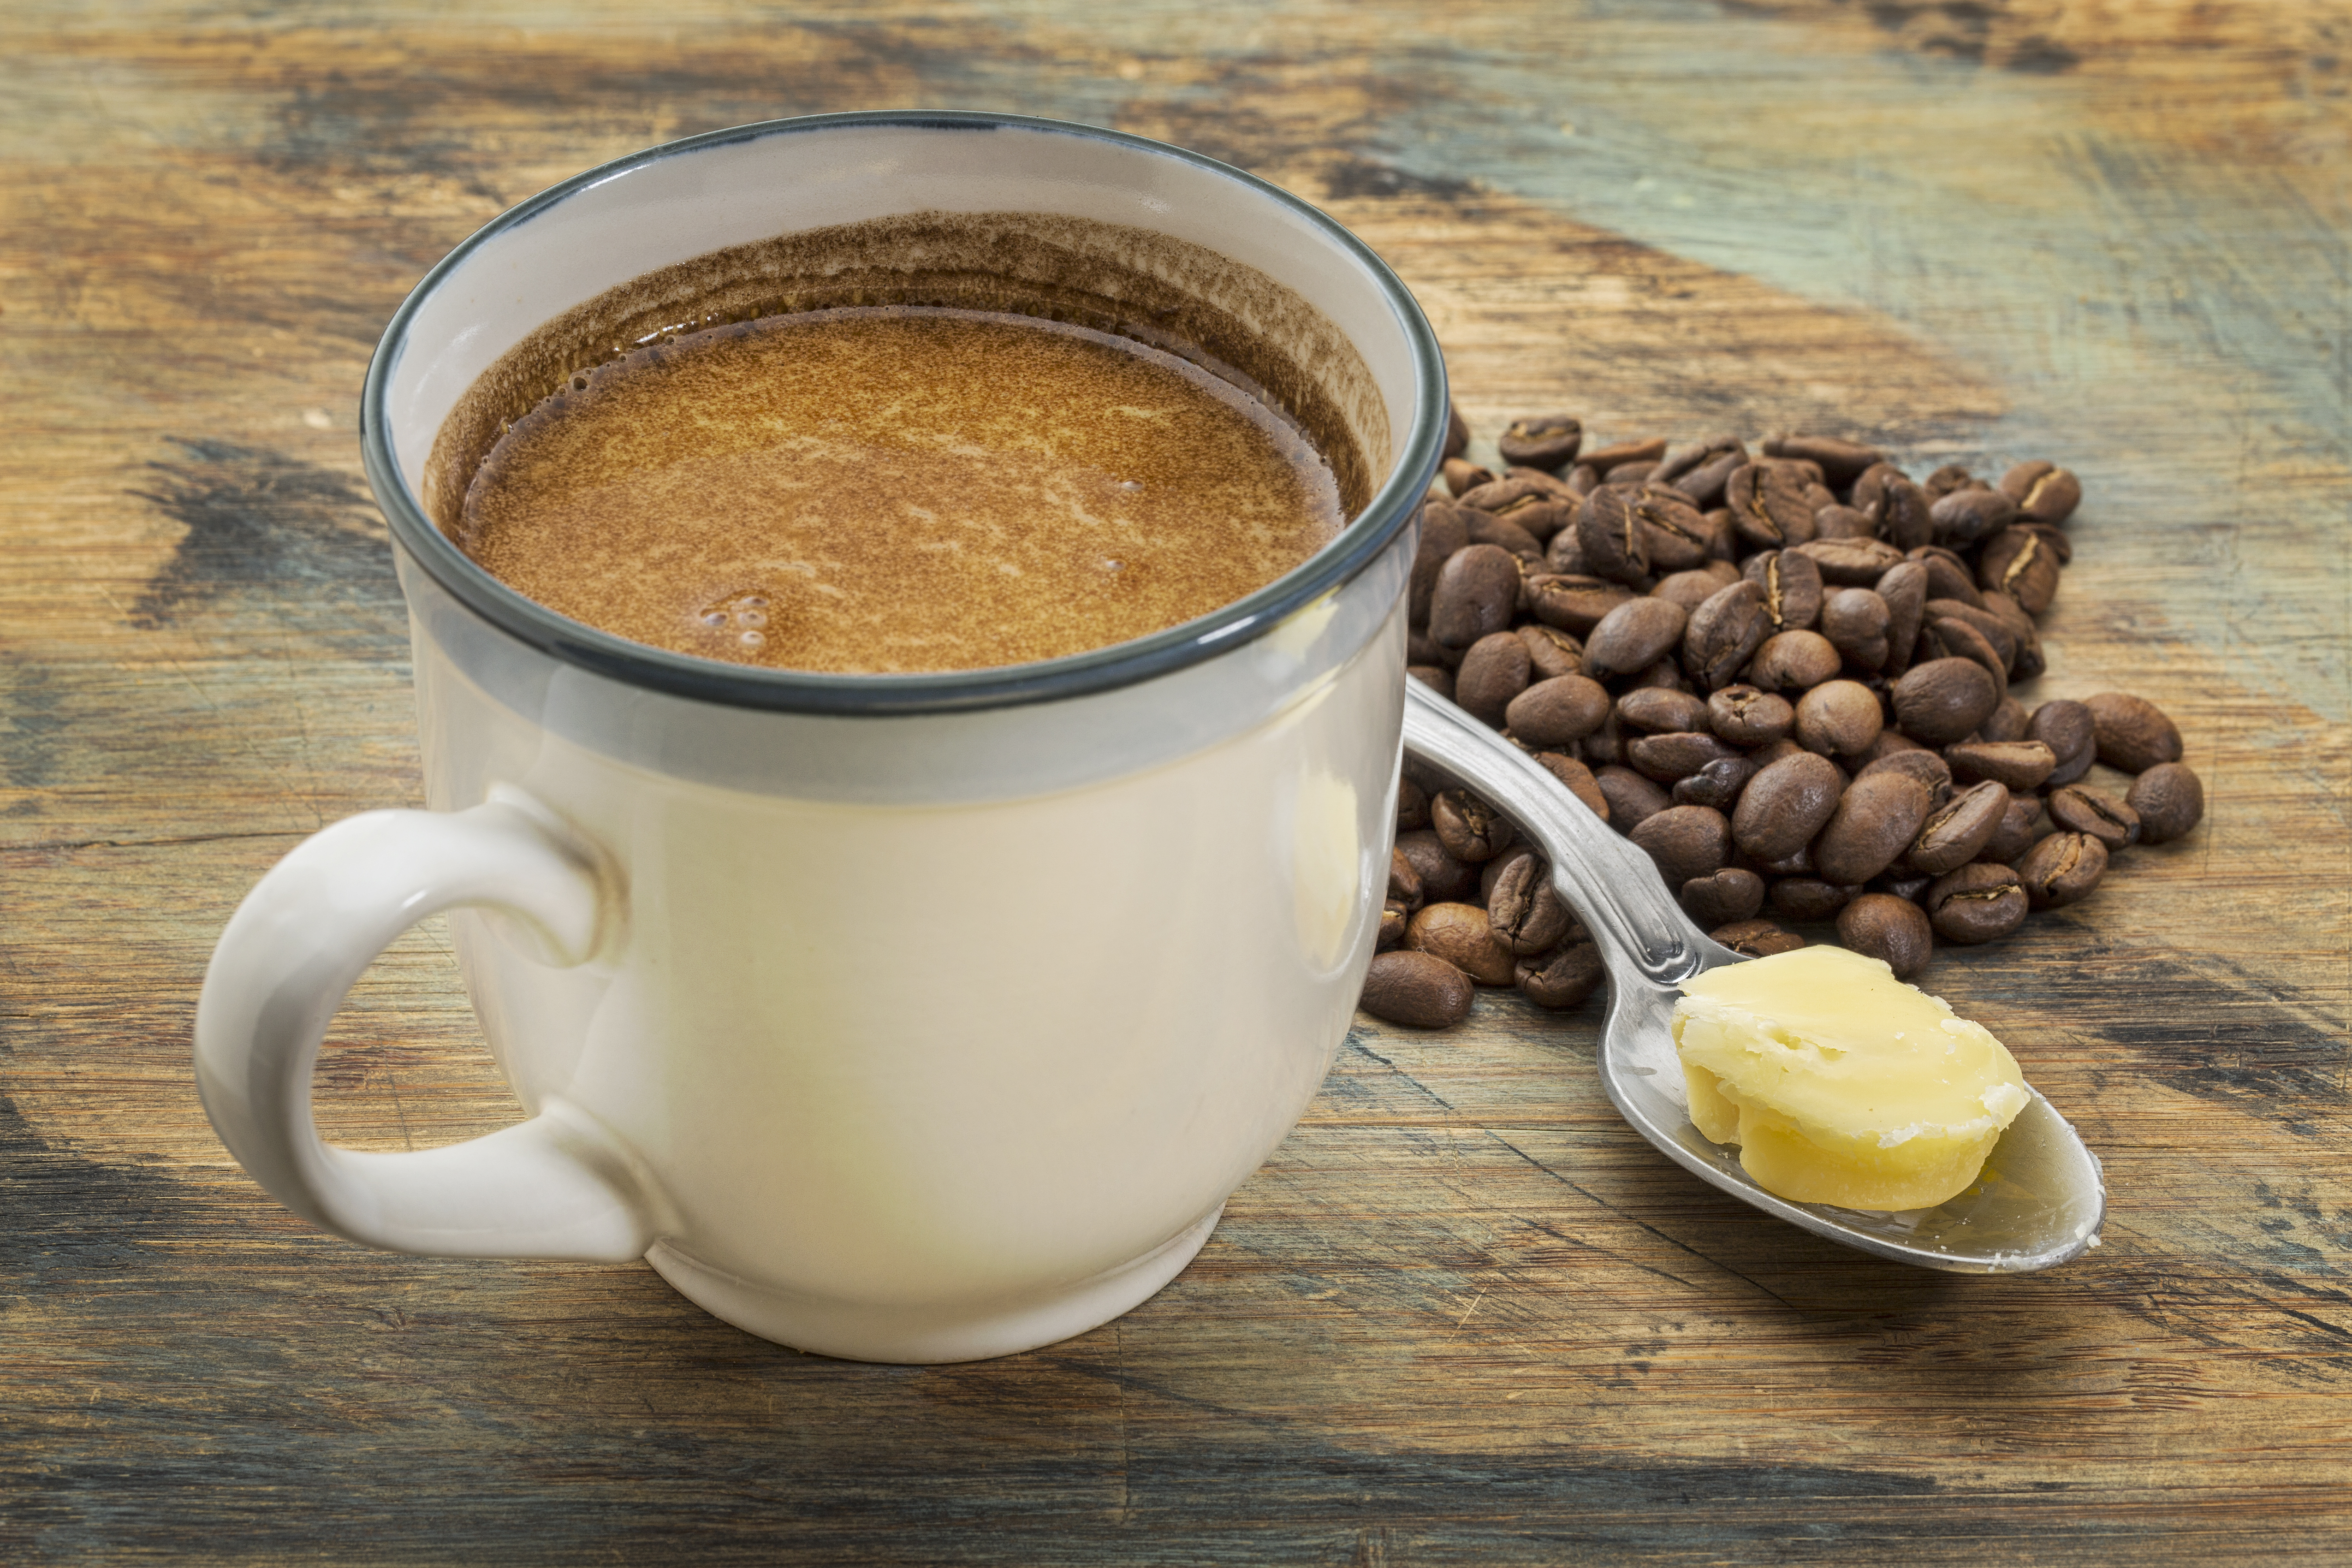 Bulletproof Coffee … It's No Magic Bullet